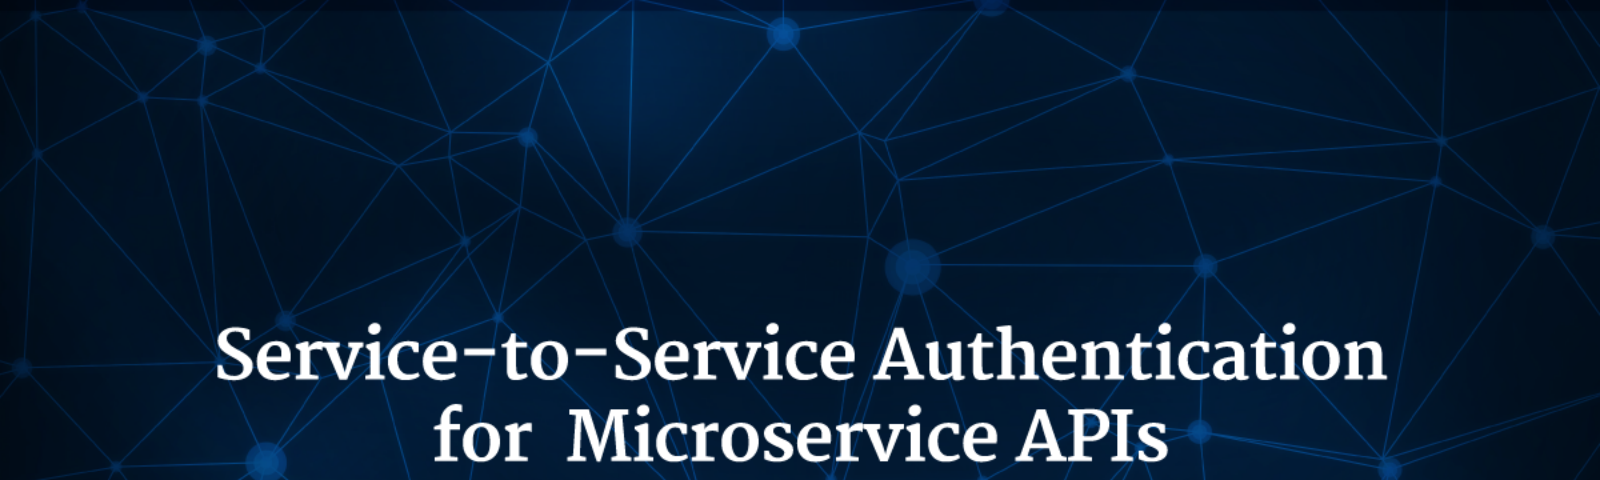 Service-to-Service Authentication for Microservice APIs - By